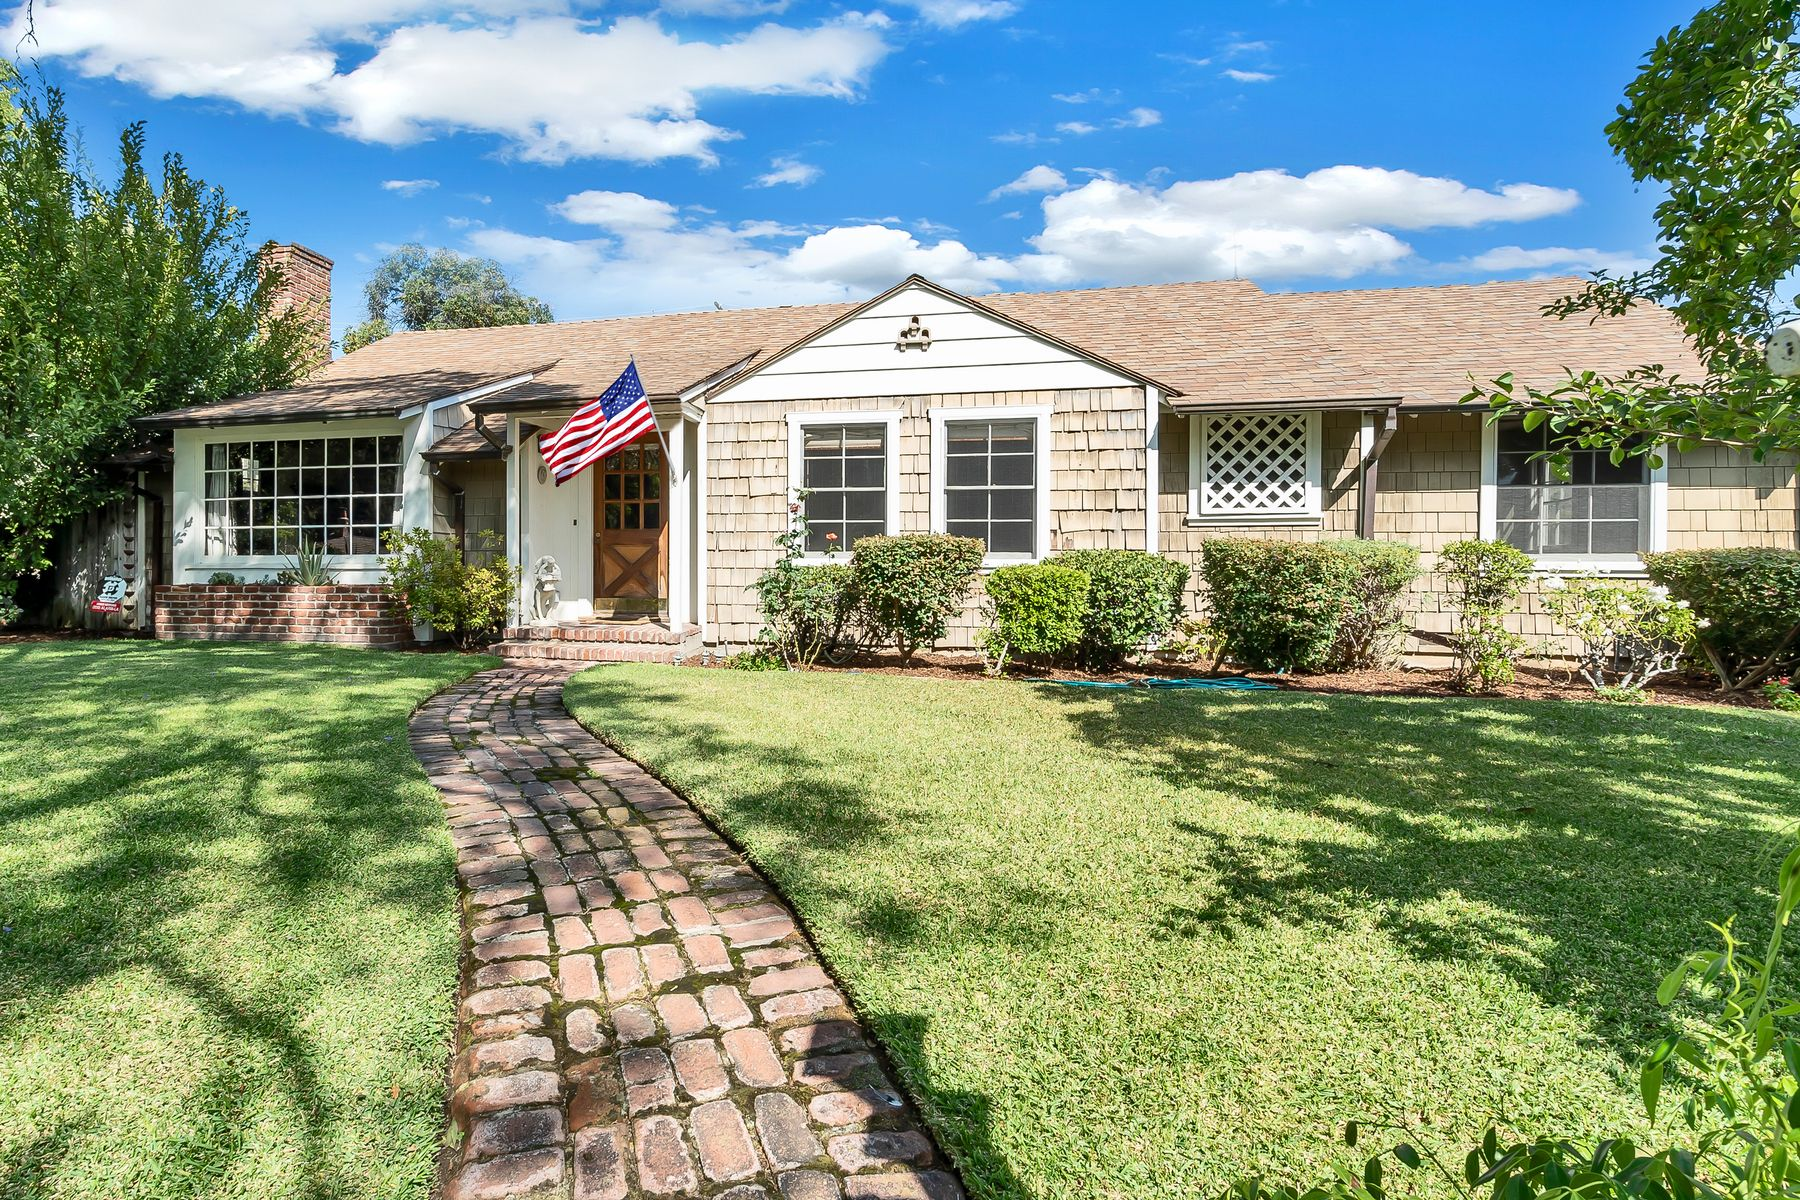 Single Family Homes for Sale at Charming English Cottage-Style Home 1215 Charles Street Pasadena, California 91103 United States